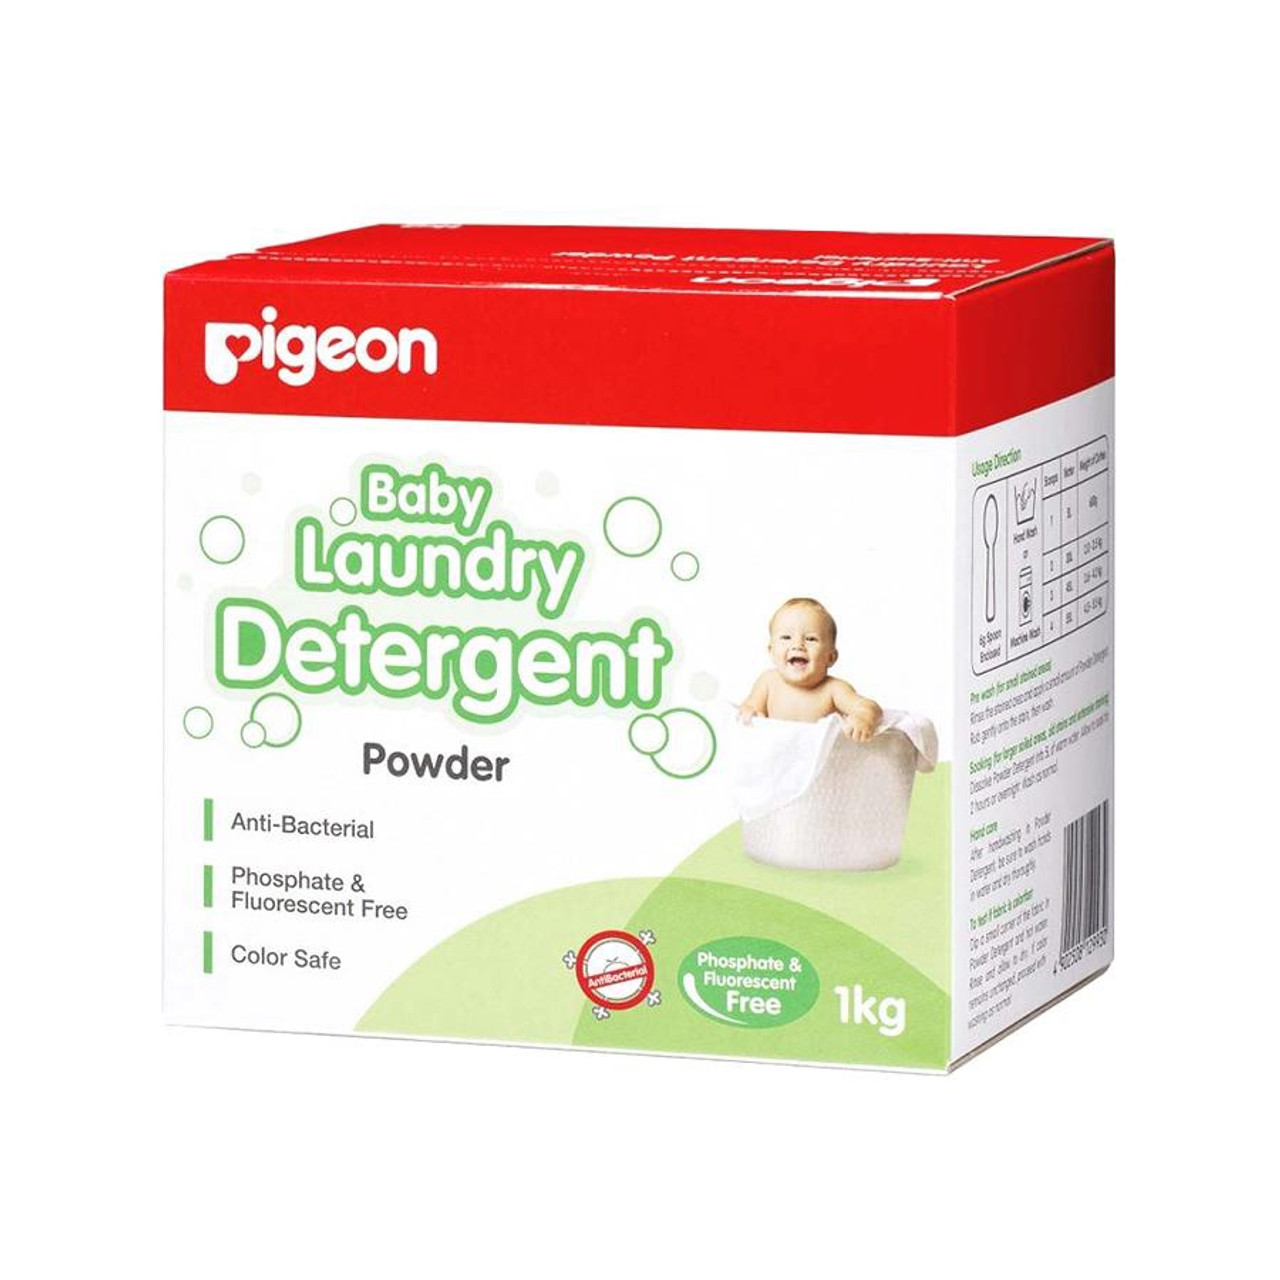 Pigeon Baby Laundry Detergent Powder 1kg at Baby Barn Discounts Pigeon Baby Laundry Detergent is a powder laundry detergent to clean baby clothes and nappies.